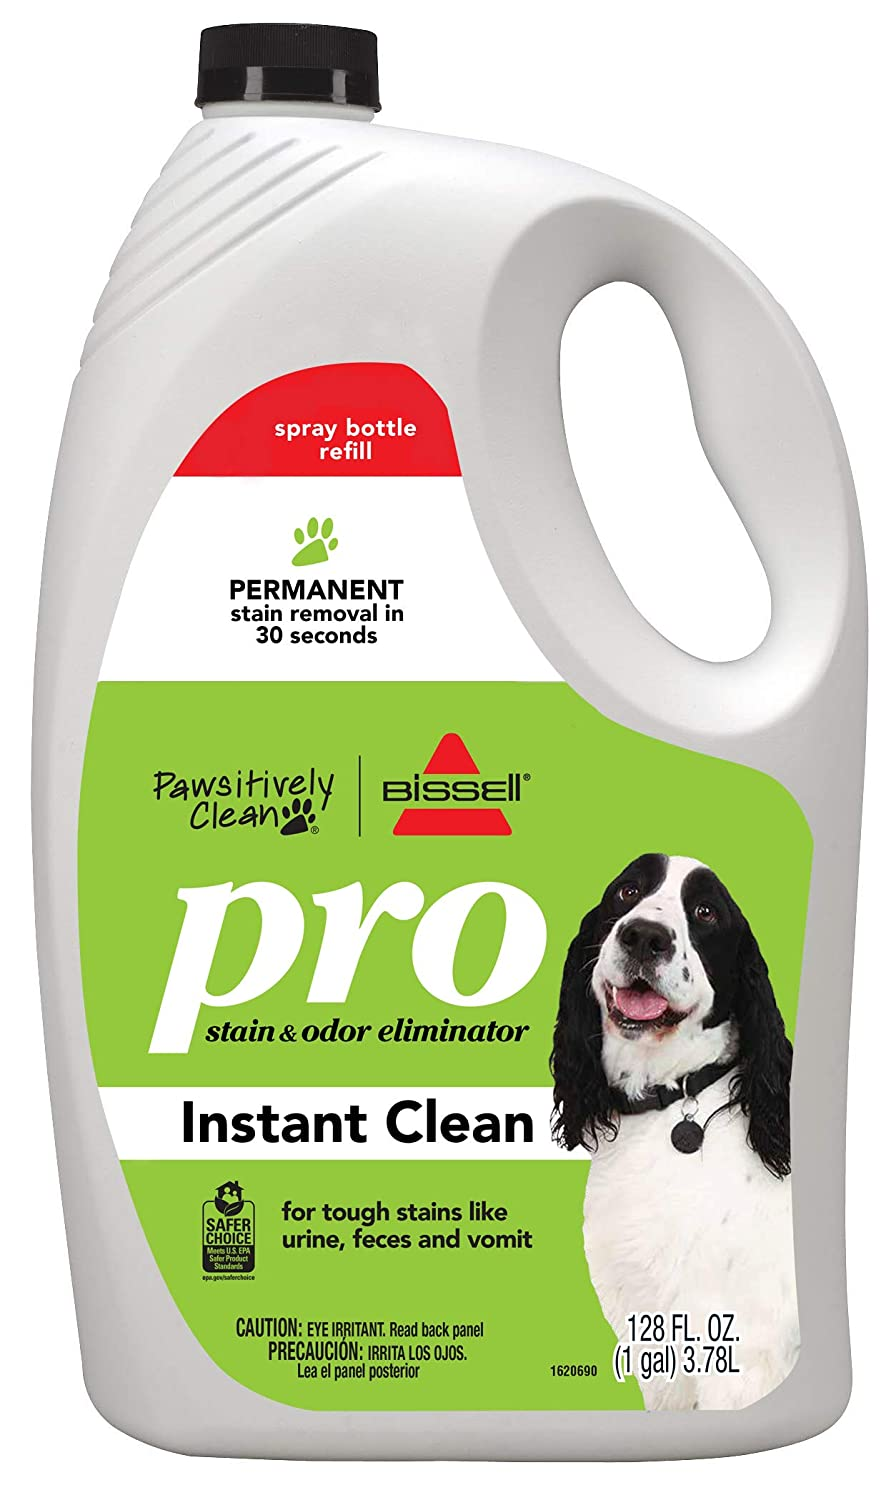 Bissell Pawsitively Clean Pro Pet Stain & Odor Eliminator Instant Clean Refill, 128oz, 2185